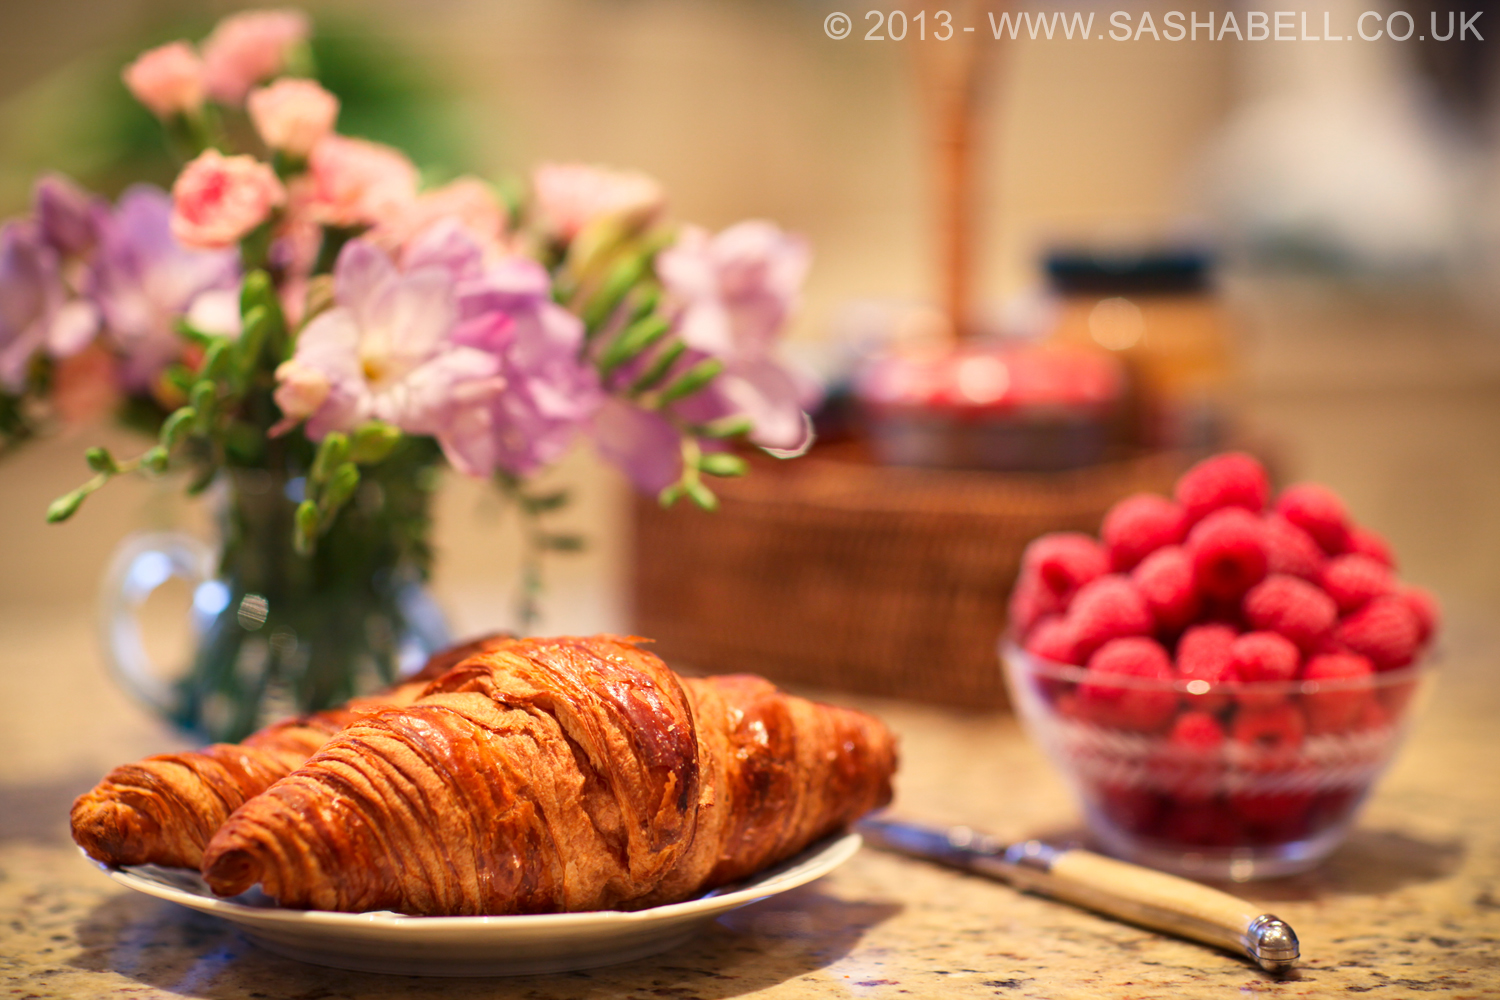 Fresh Croissant With Rasberries – Day 153/365